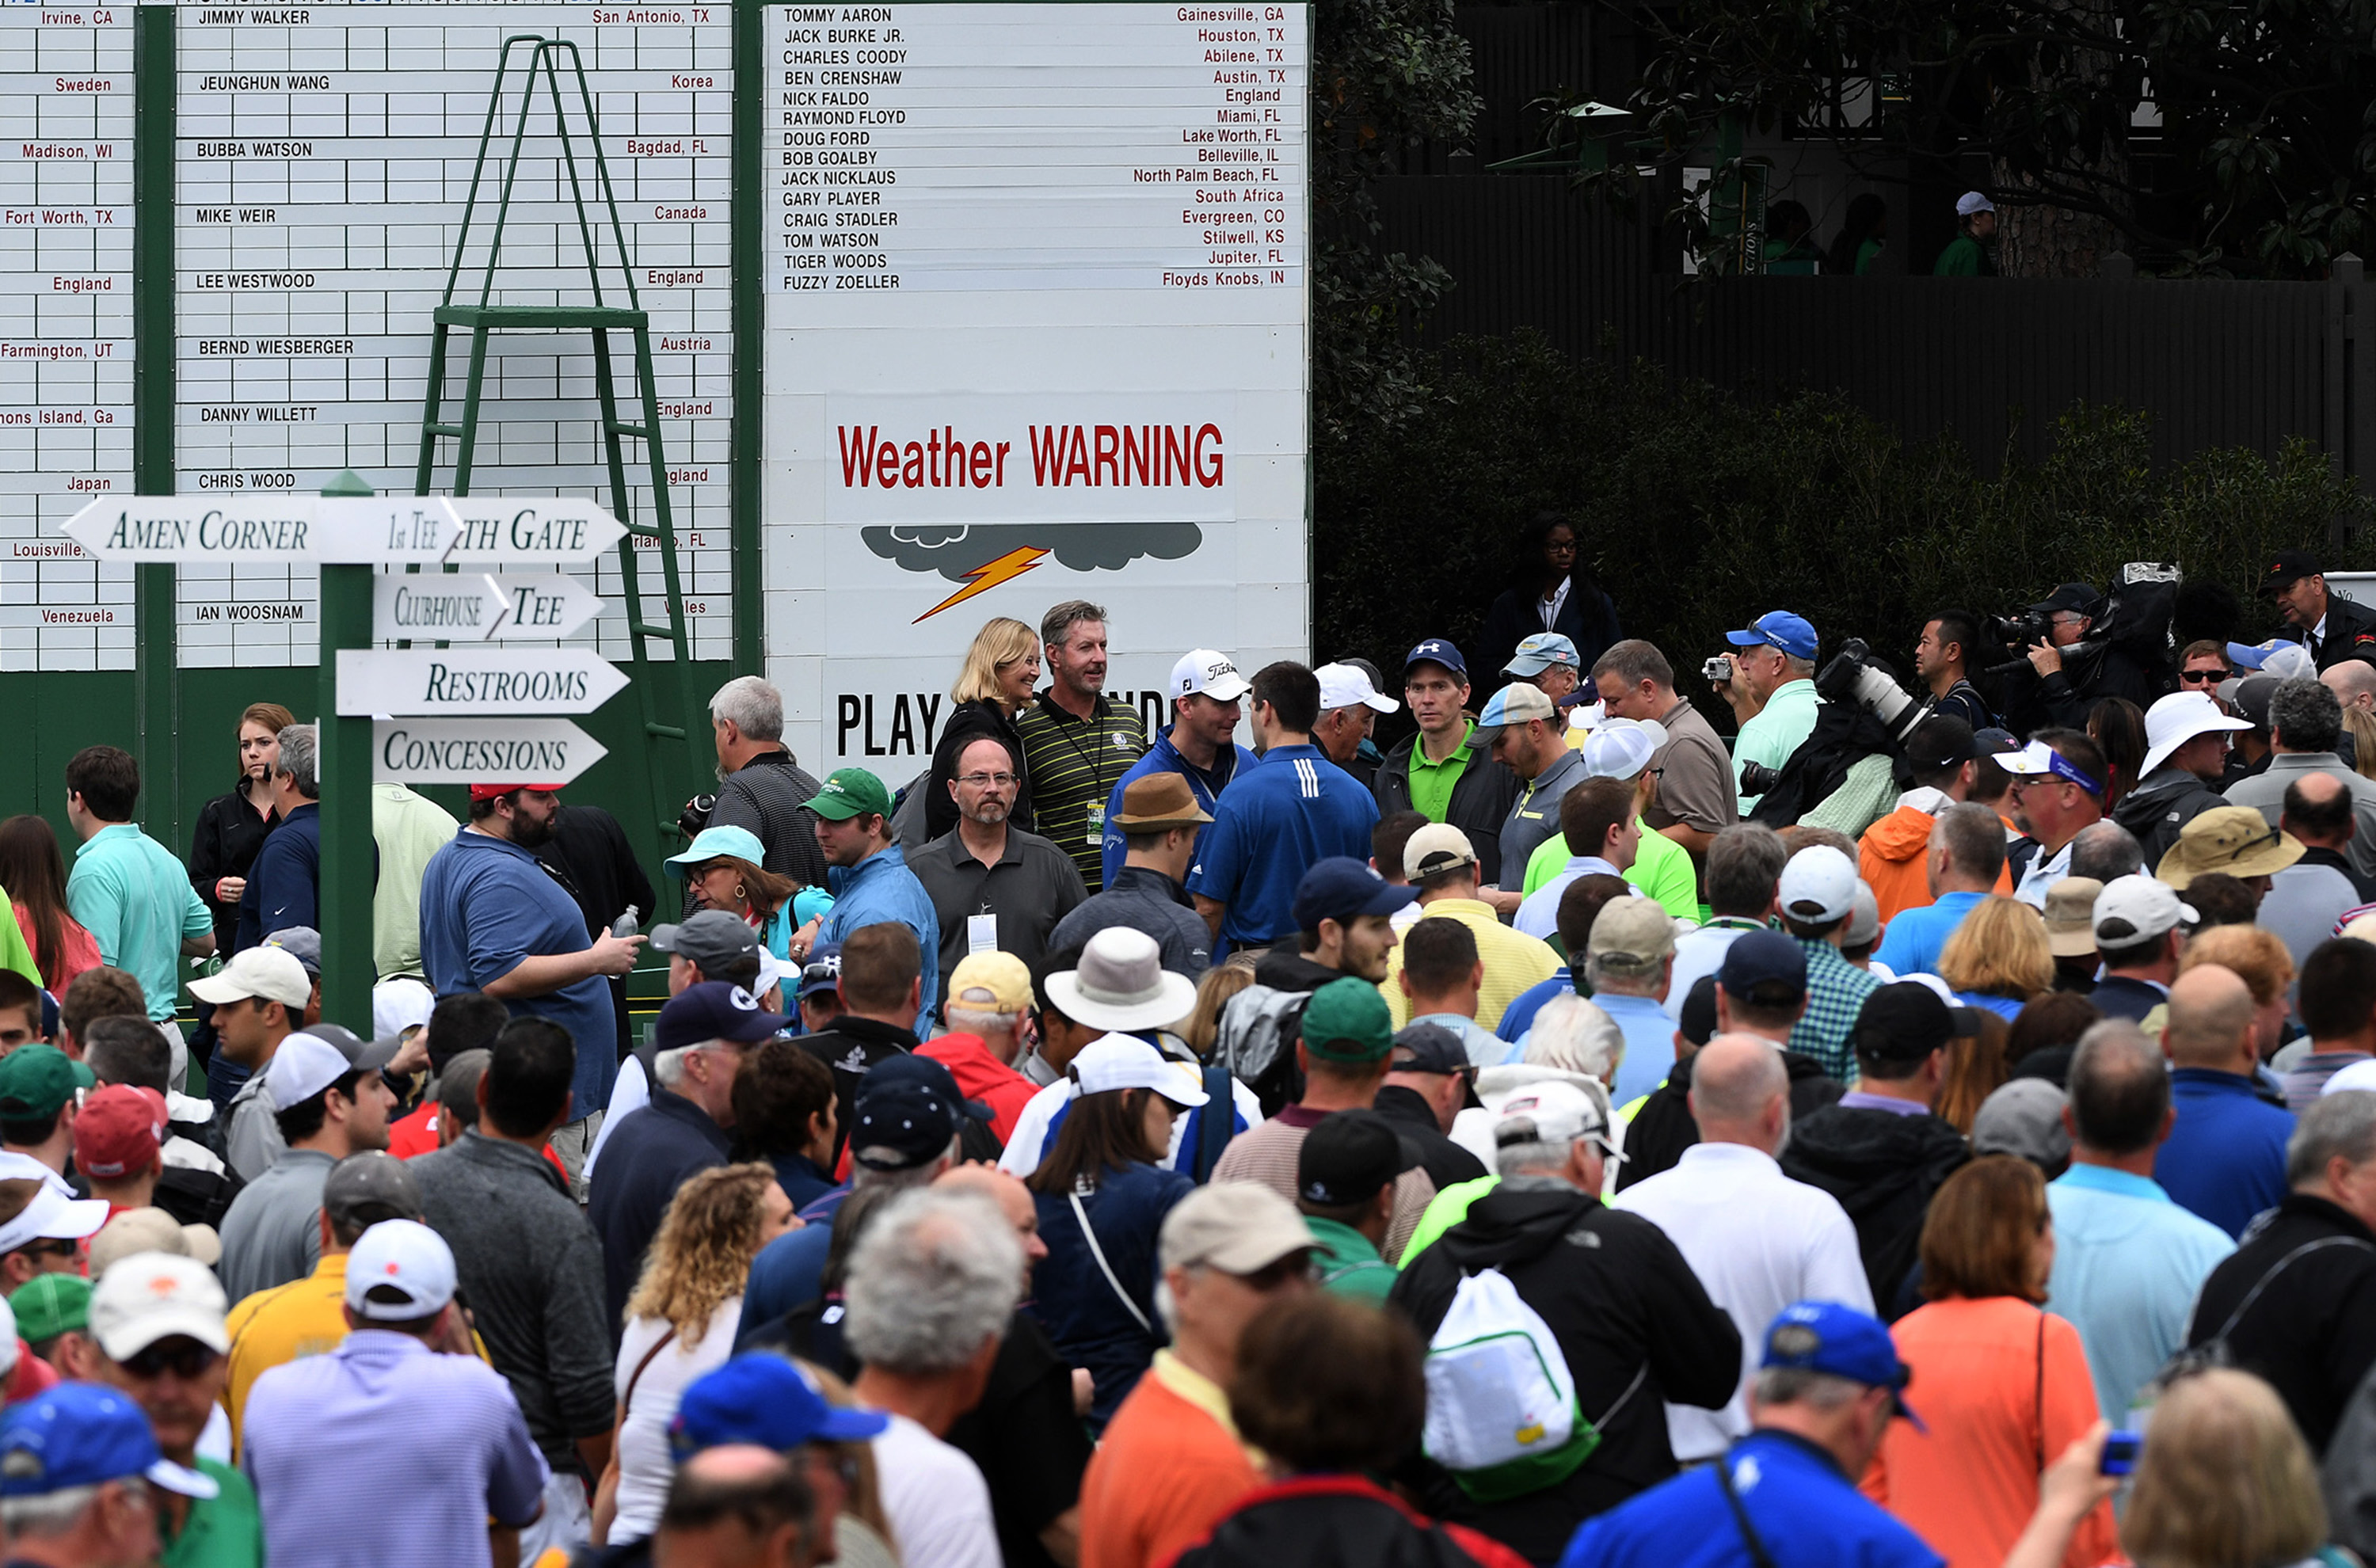 Patrons leave the course at Augusta National Golf Club as inclement weather approaches on Wednesday.